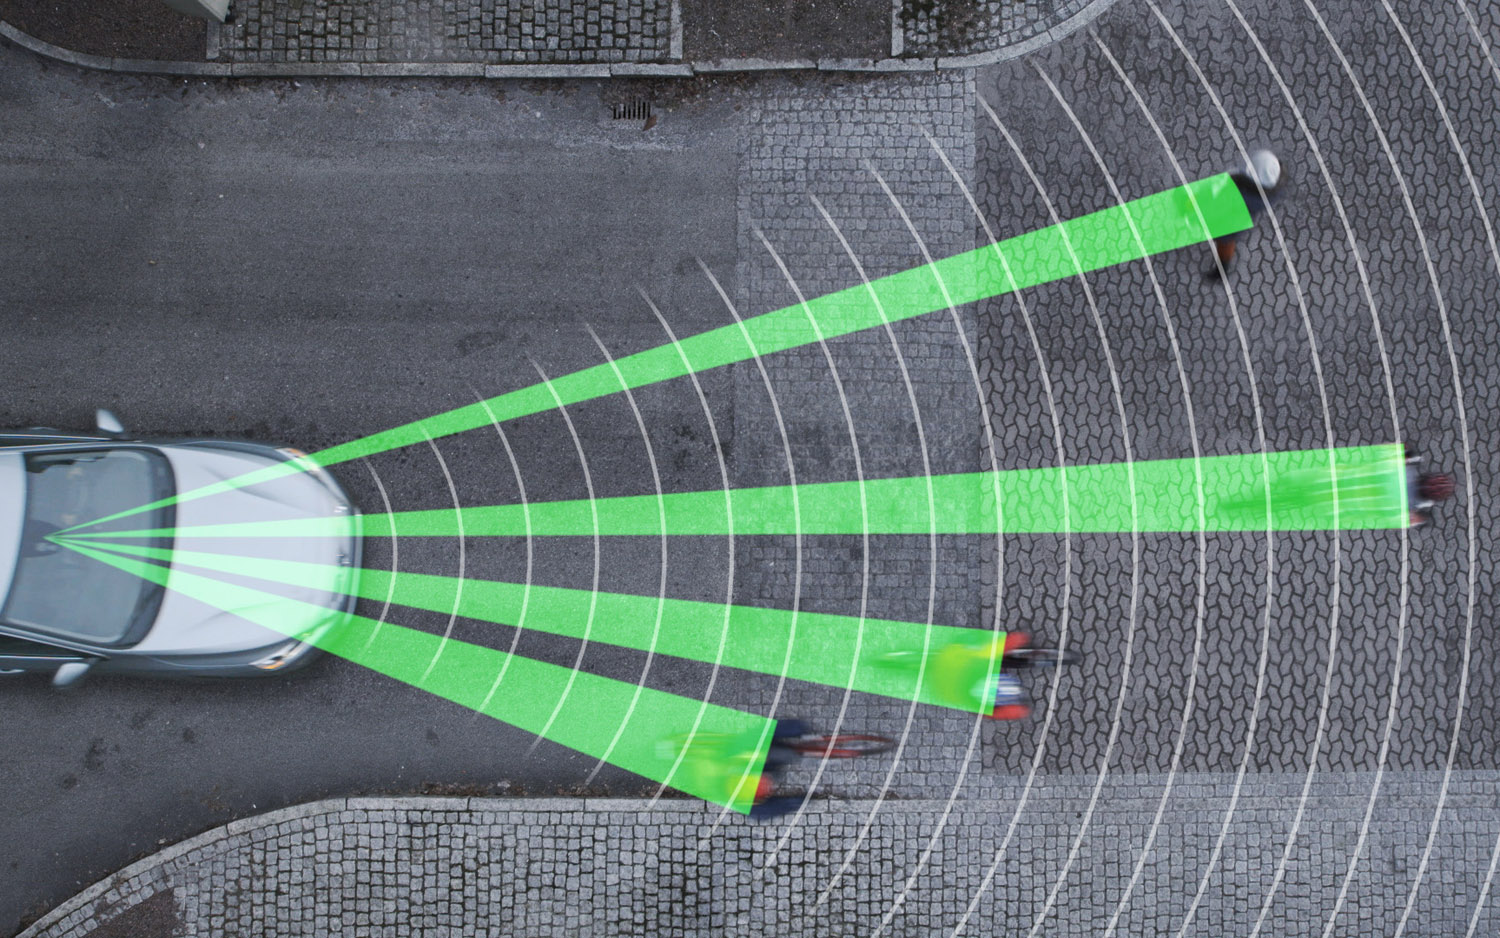 Volvo City Safety Cyclist Detection Schematic1